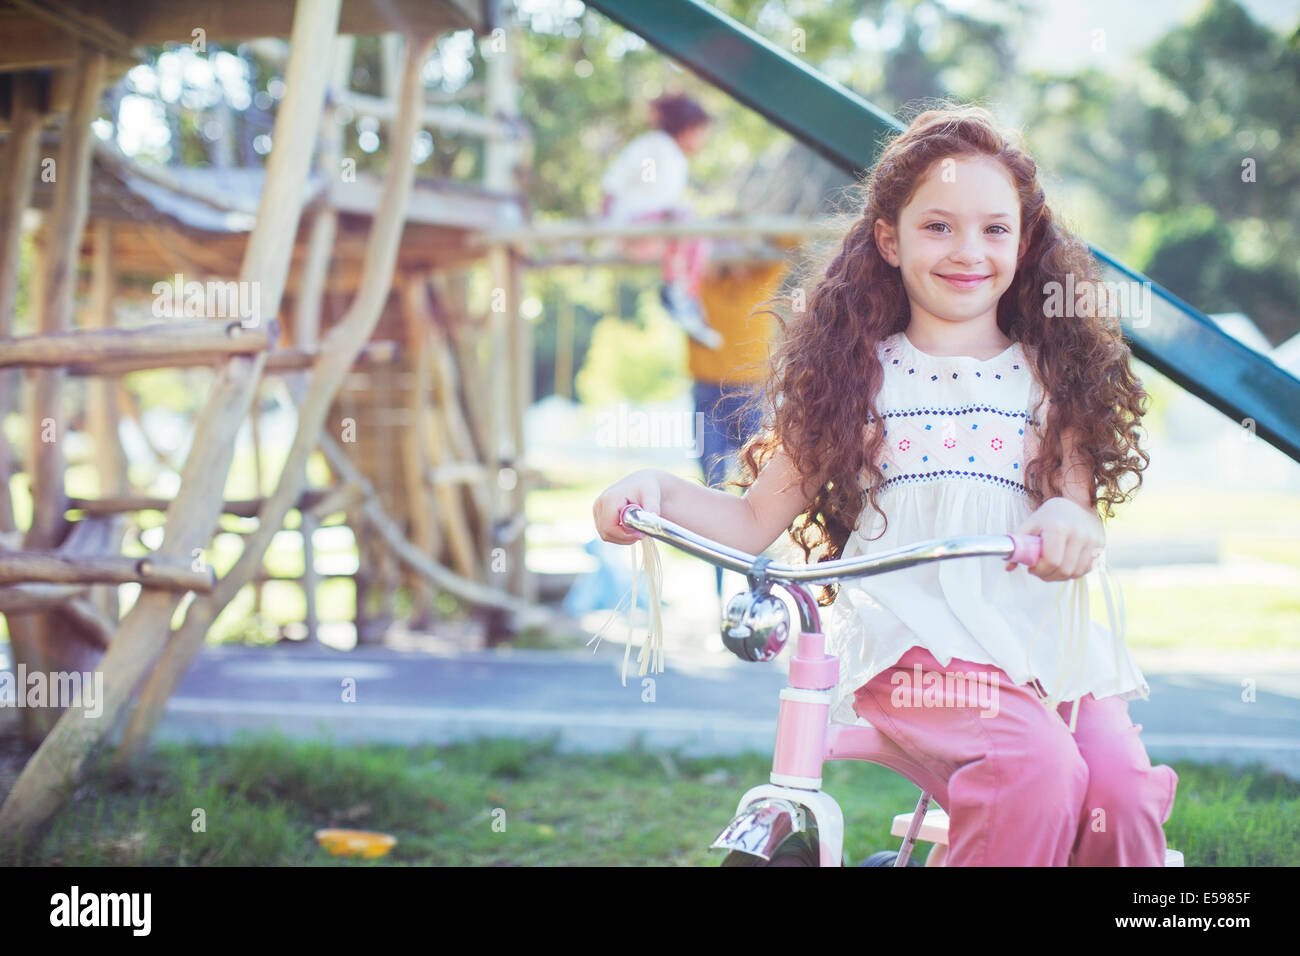 Smiling girl sitting on bicycle at playground - Stock Image